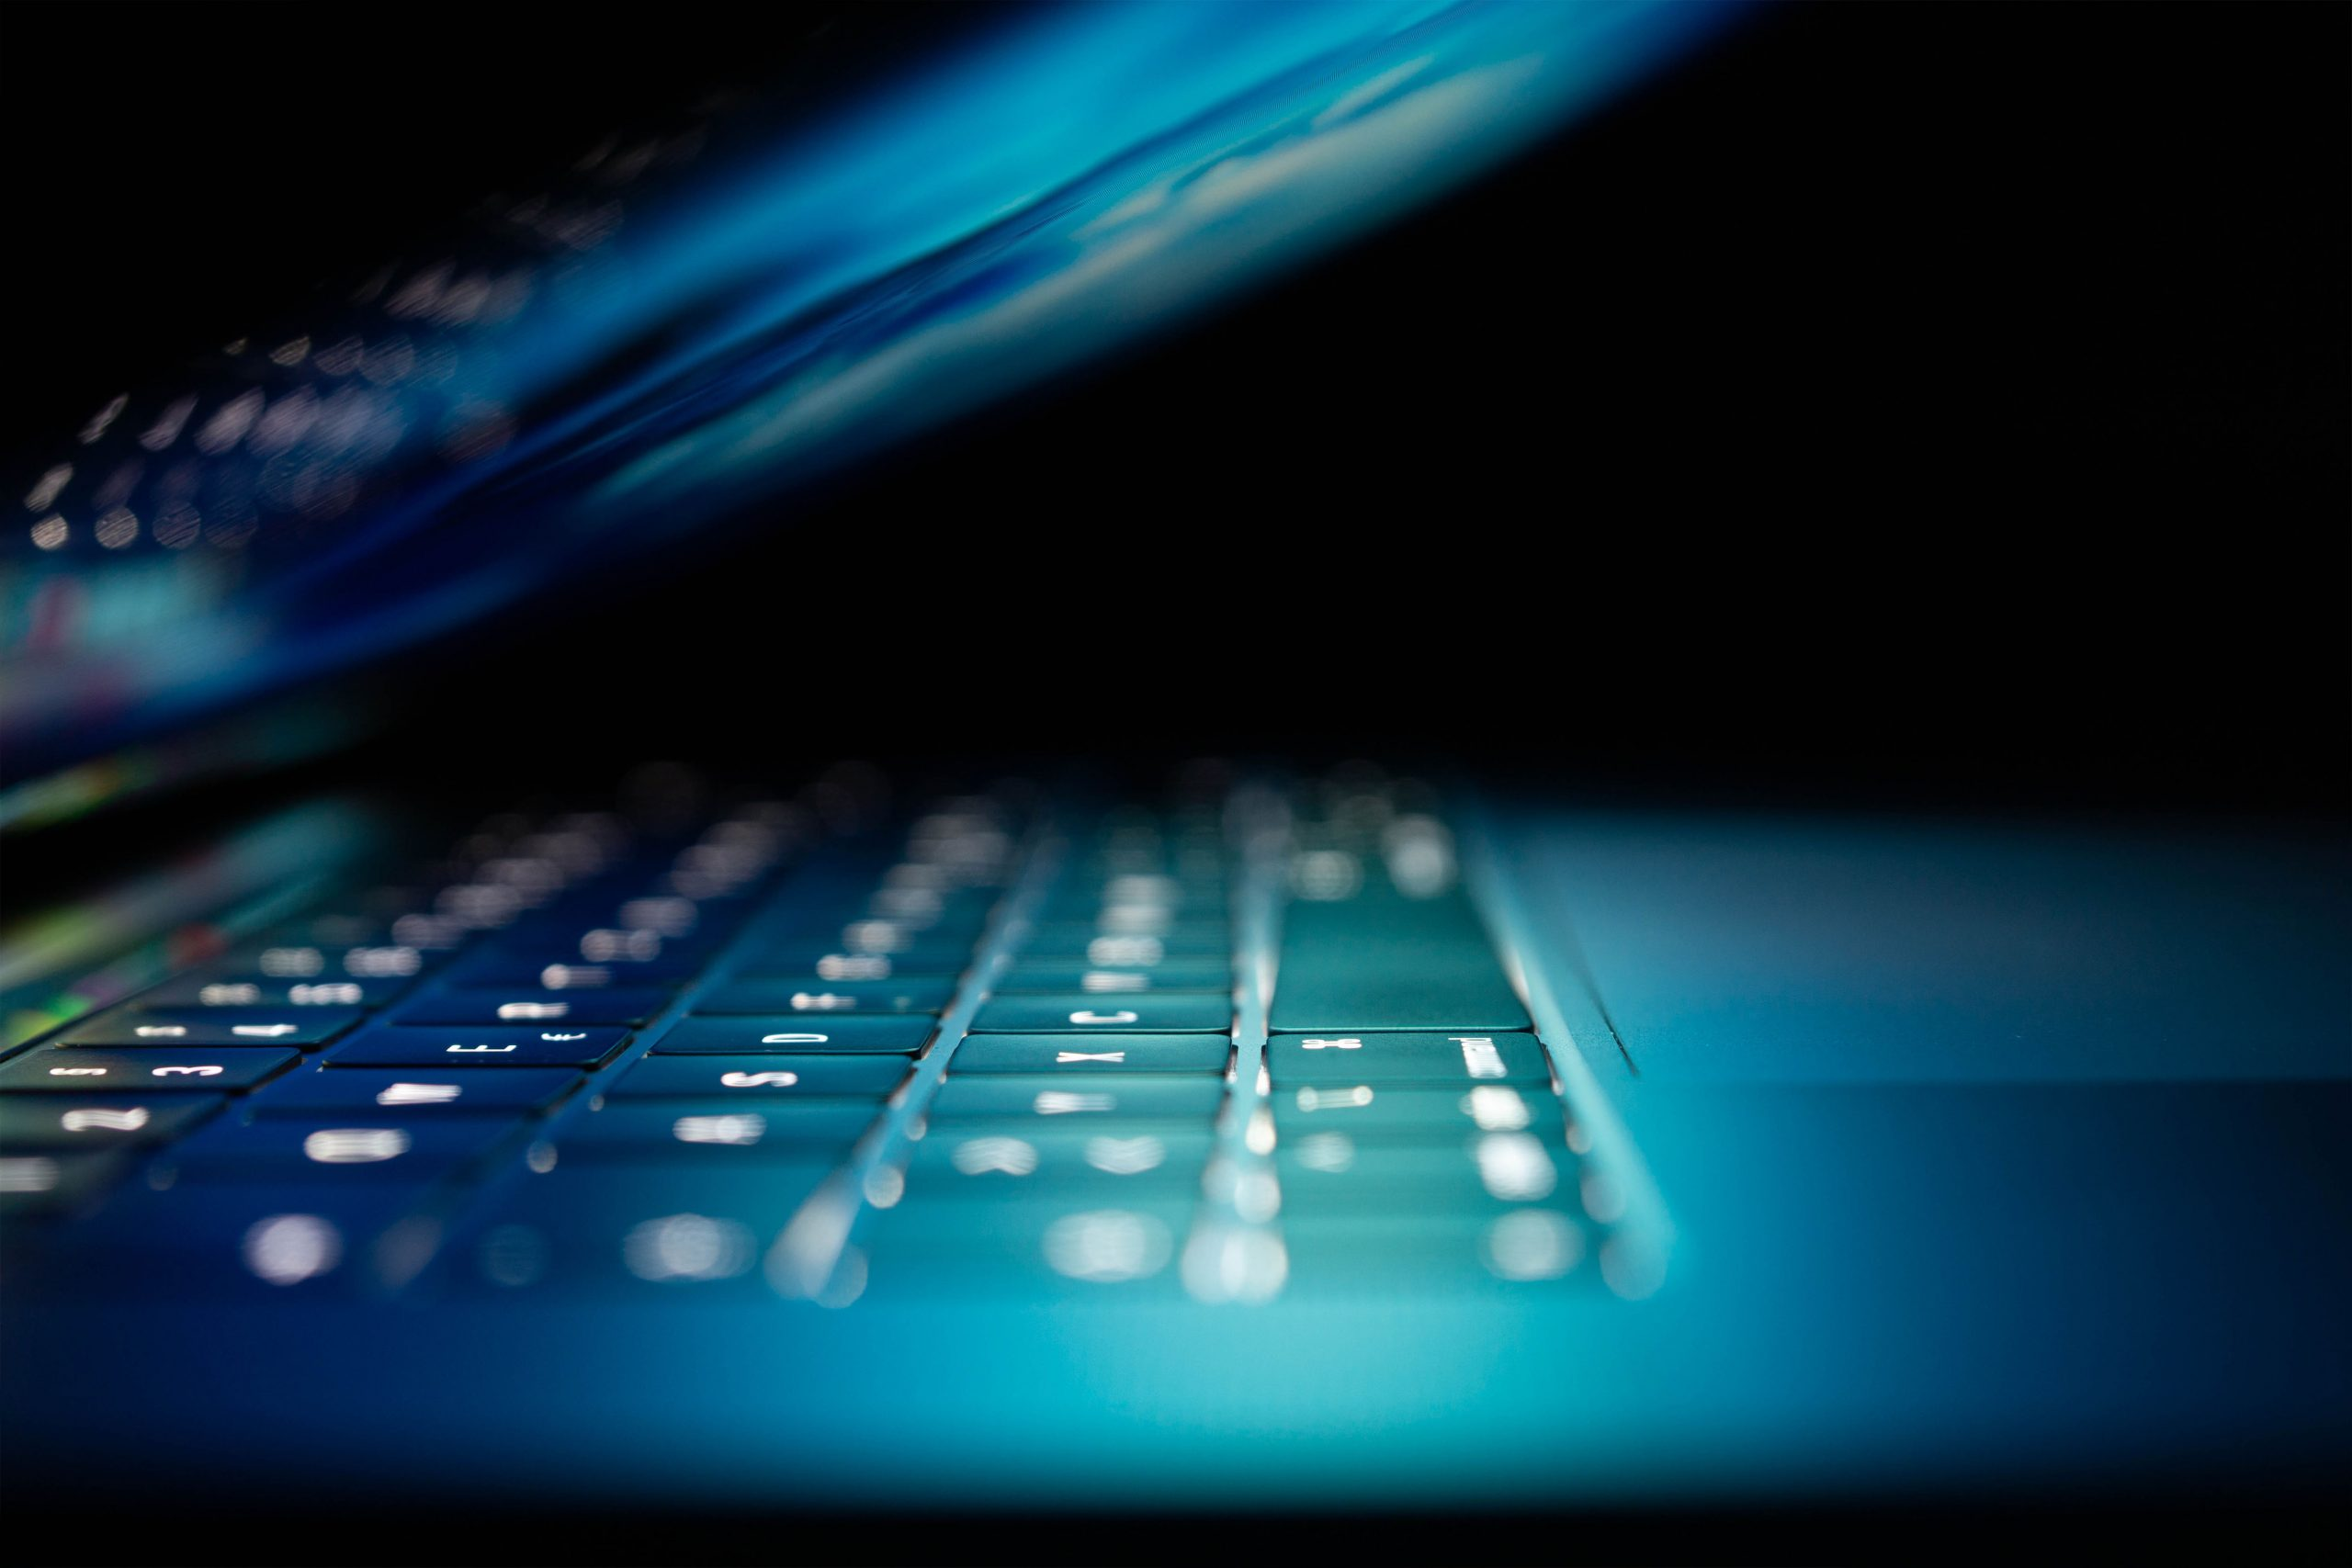 Rethink Cyber Security scaled